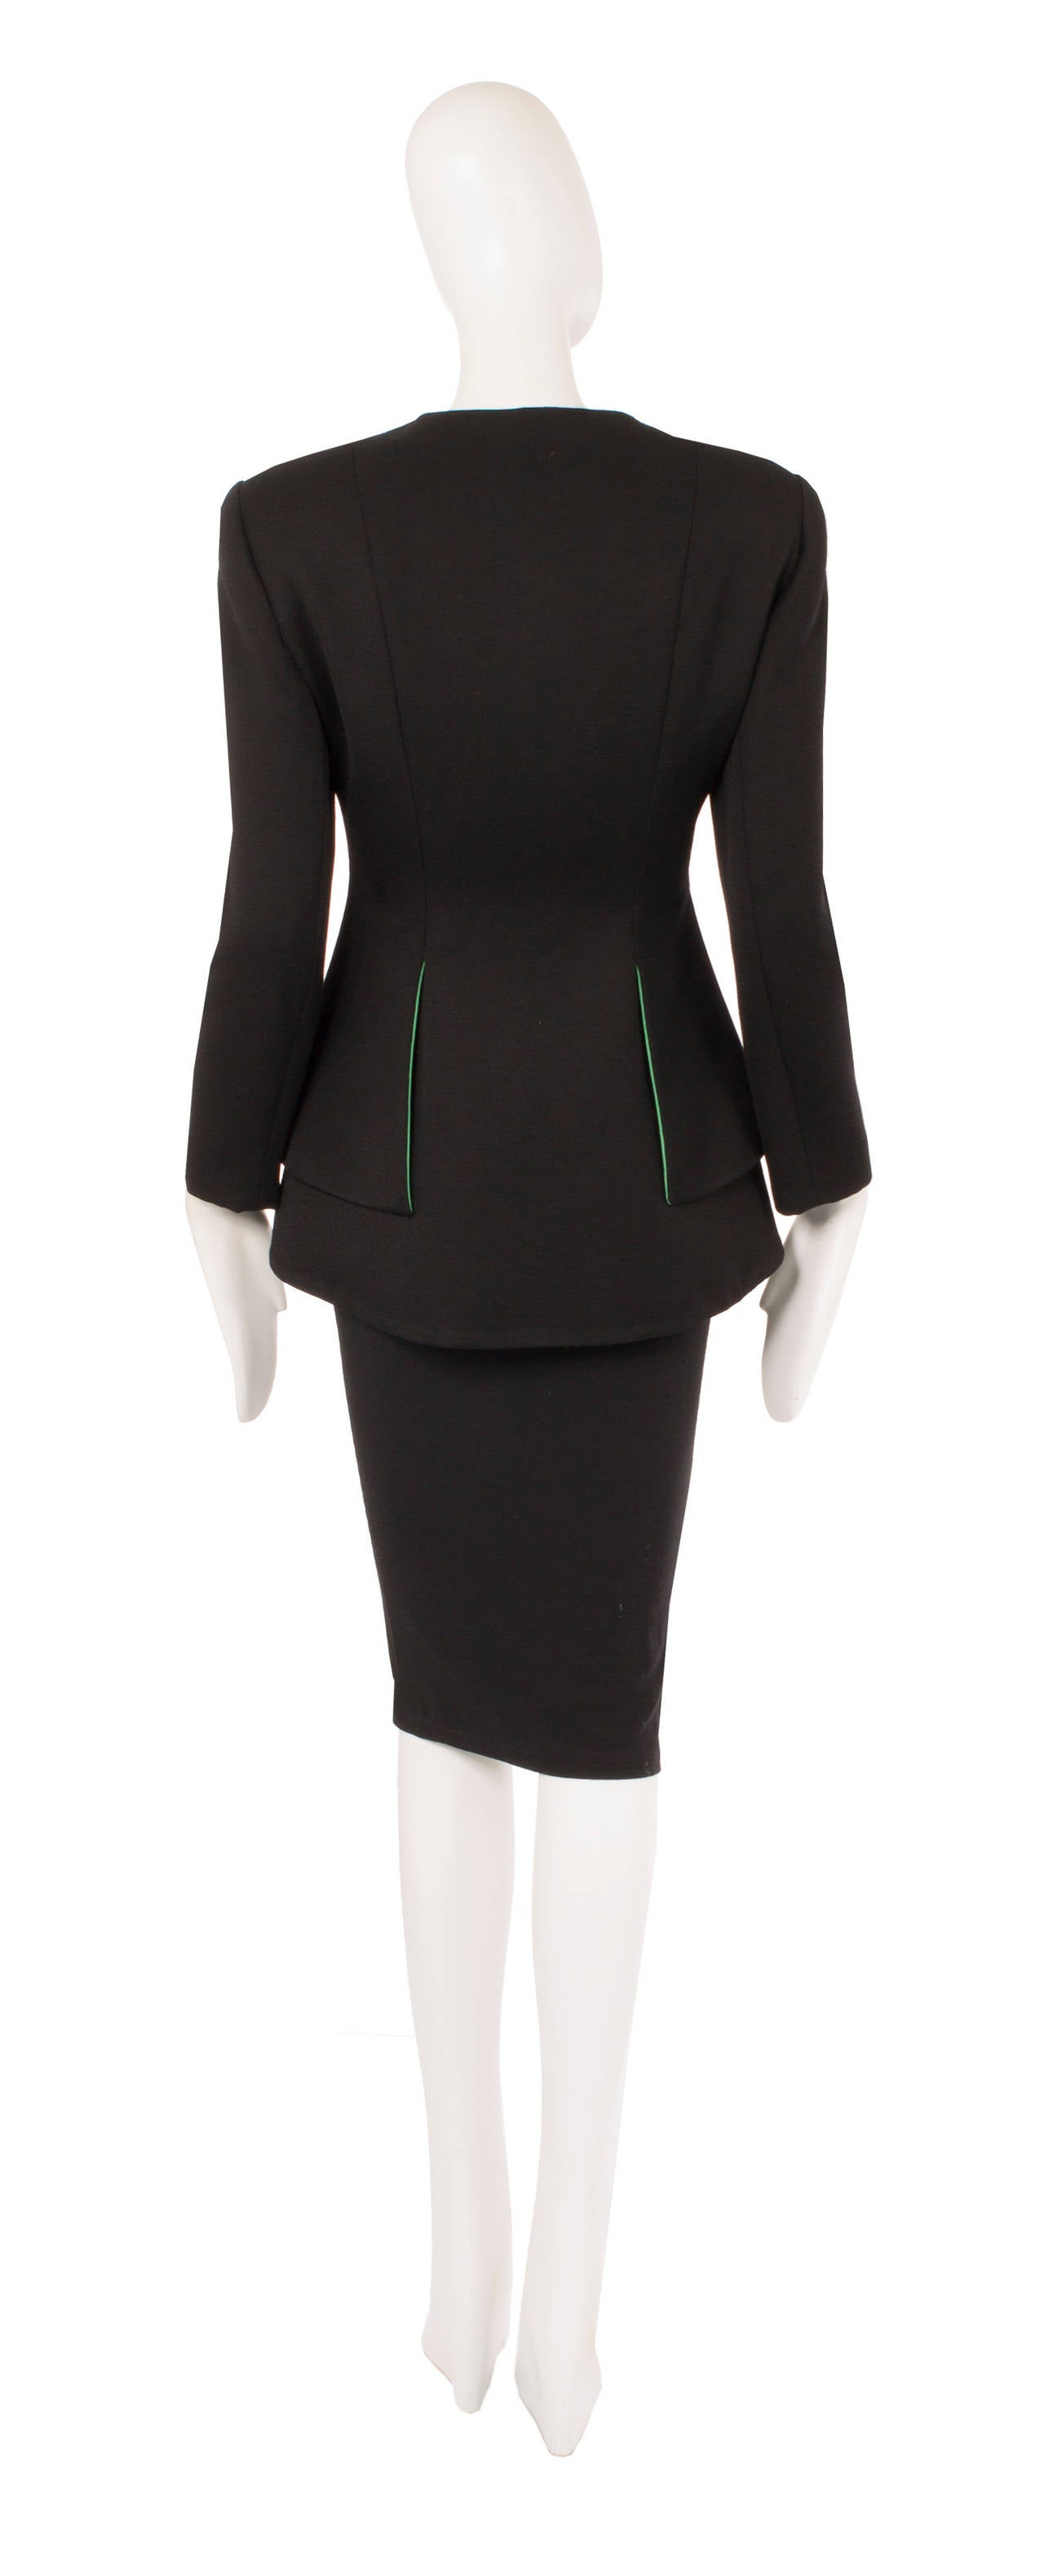 A madame gr s haute couture jacket circa 1970 for sale at for Haute couture jacket